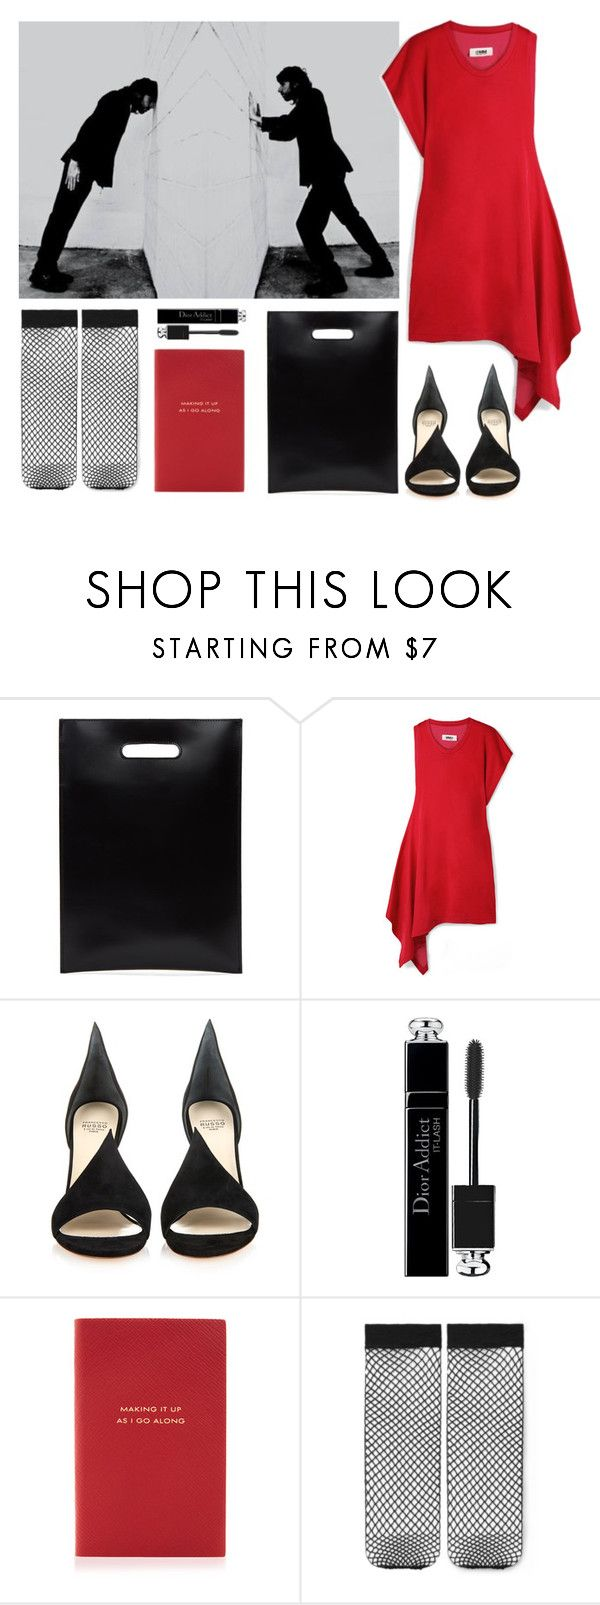 """""""mixed signals and second thoughts."""" by gabrielleleroy ❤ liked on Polyvore featuring MM6 Maison Margiela, Francesco Russo, Christian Dior, Smythson and statementbags"""